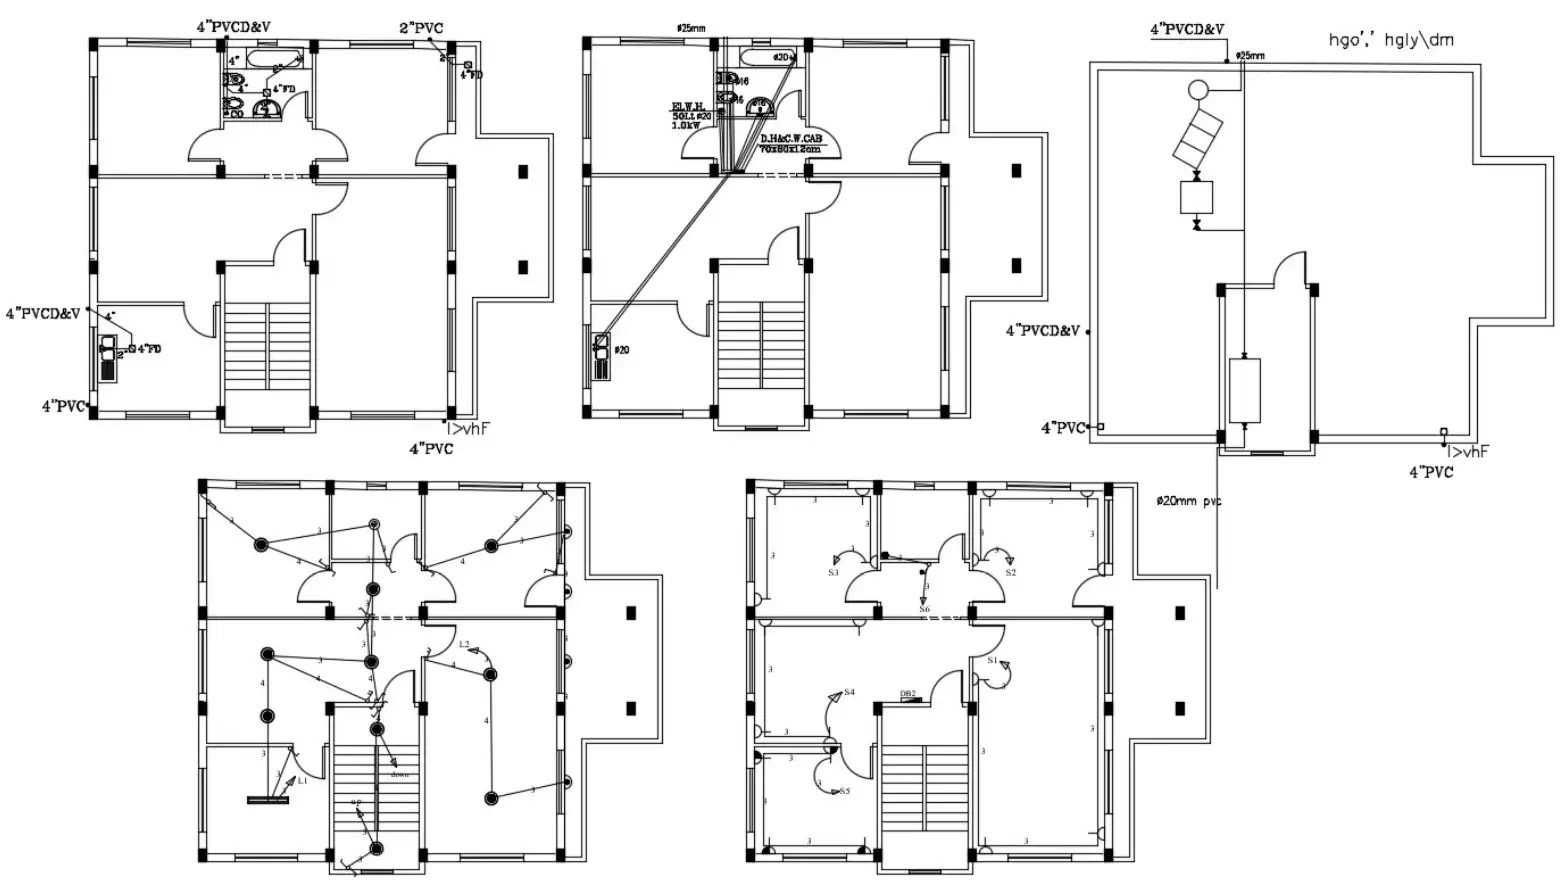 House Floor Layout Plan With Electrical And Plumbing